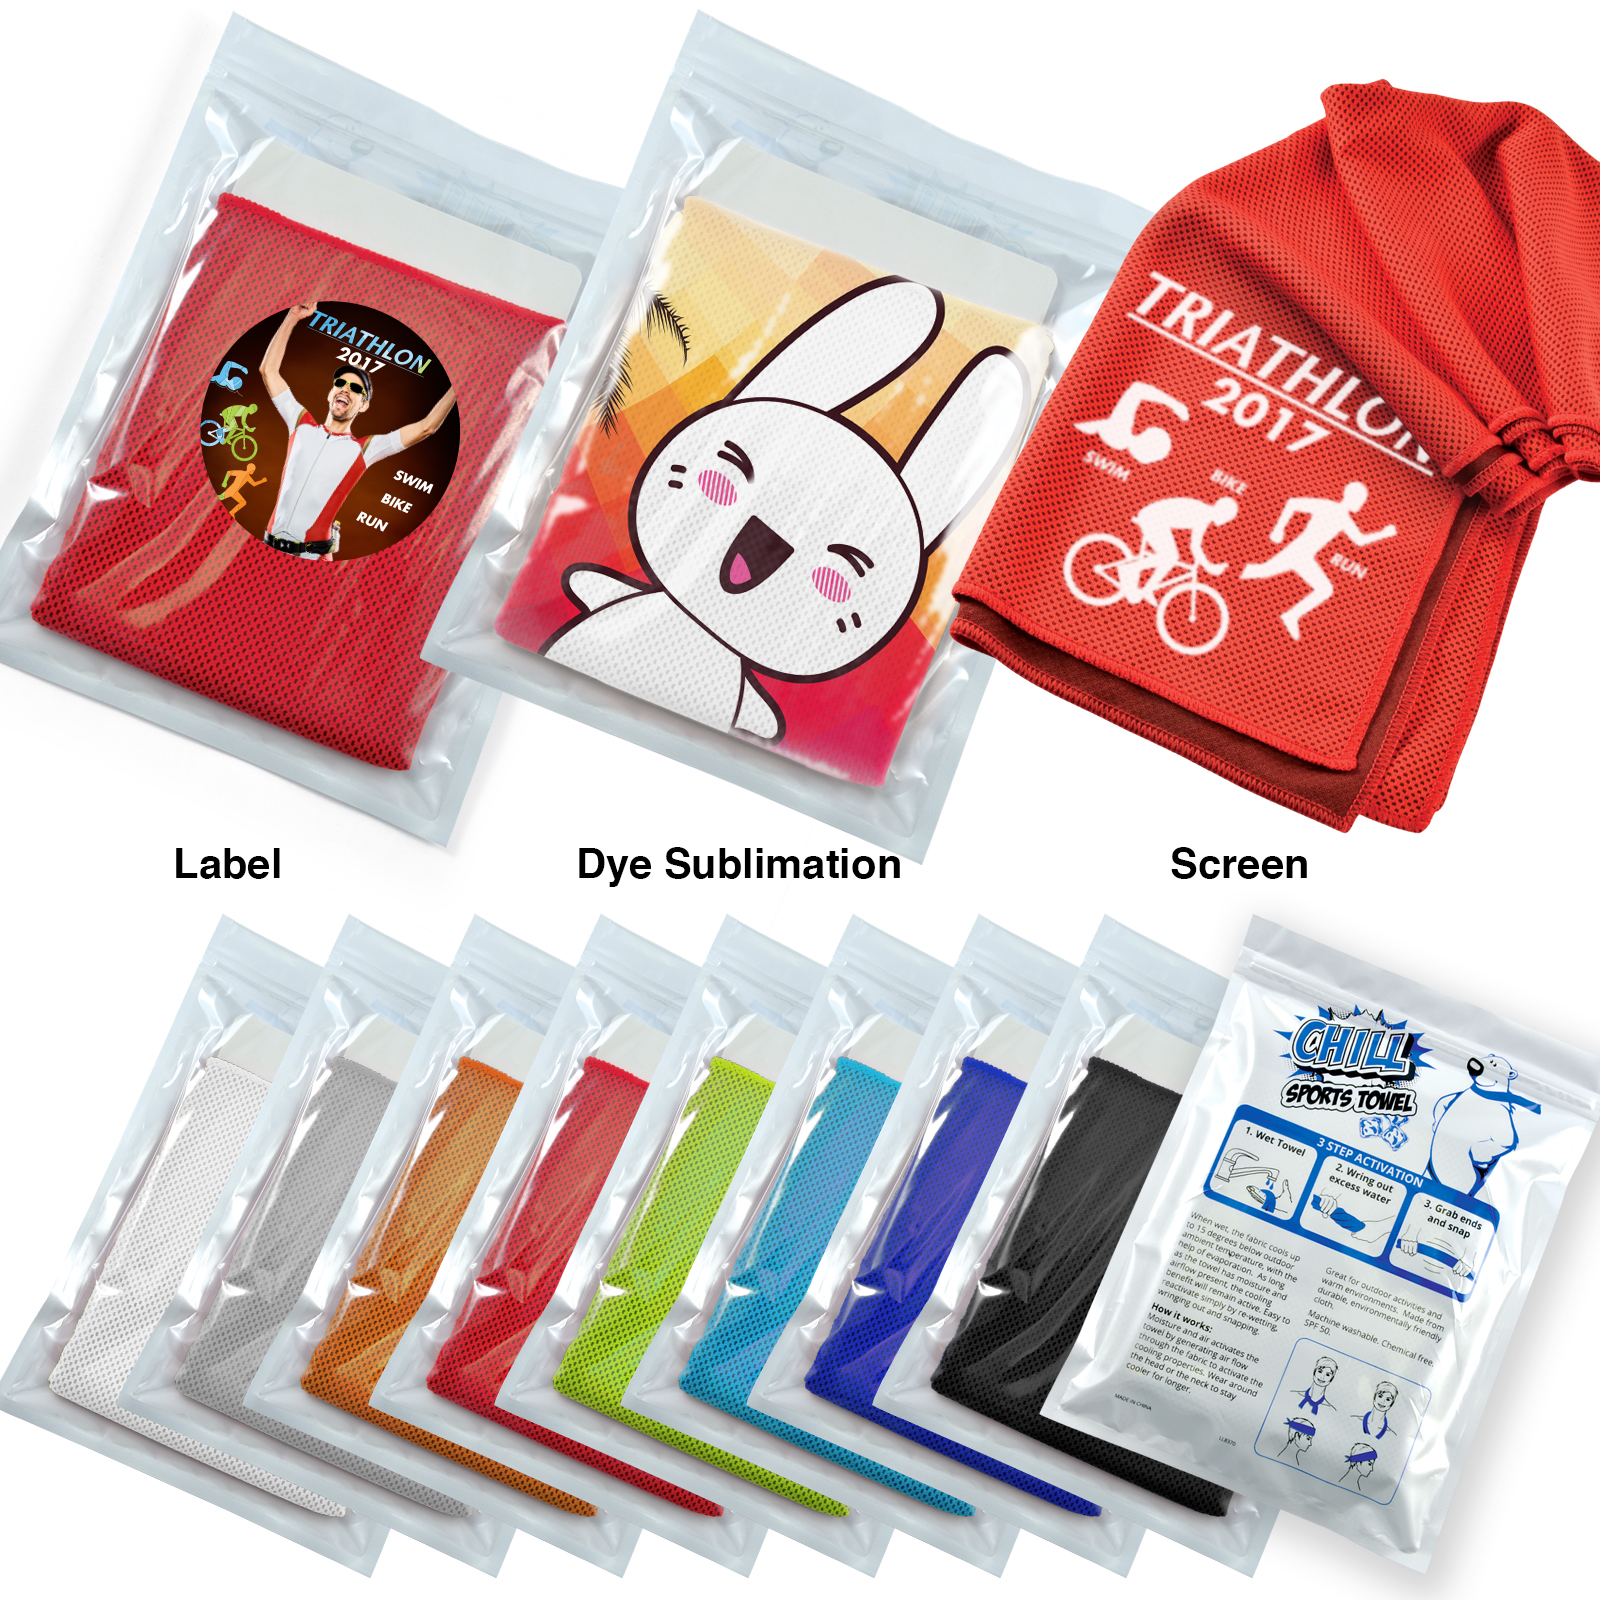 Chill Cooling Towel in Pouch - 1 Col 1 Pos Print